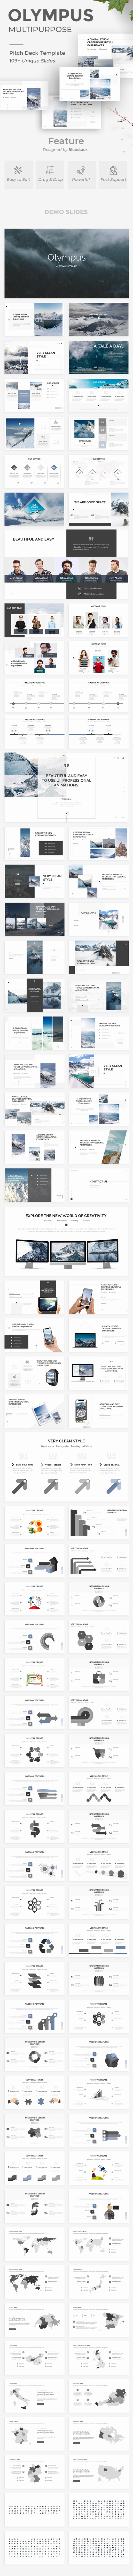 Olympus Creative Keynote Template - Creative Keynote Templates